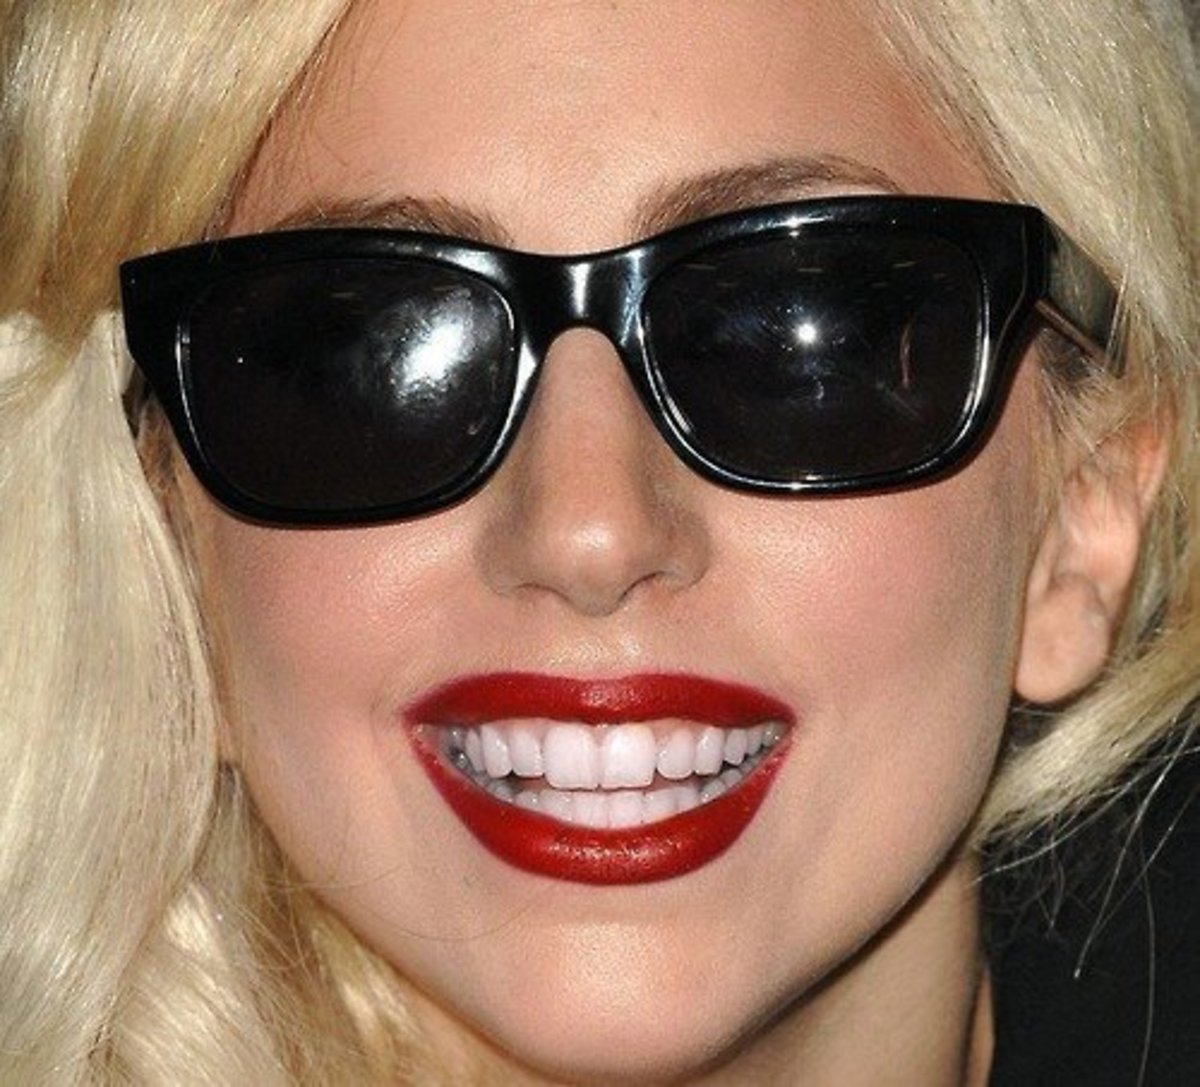 Lady Gaga with red lipsick